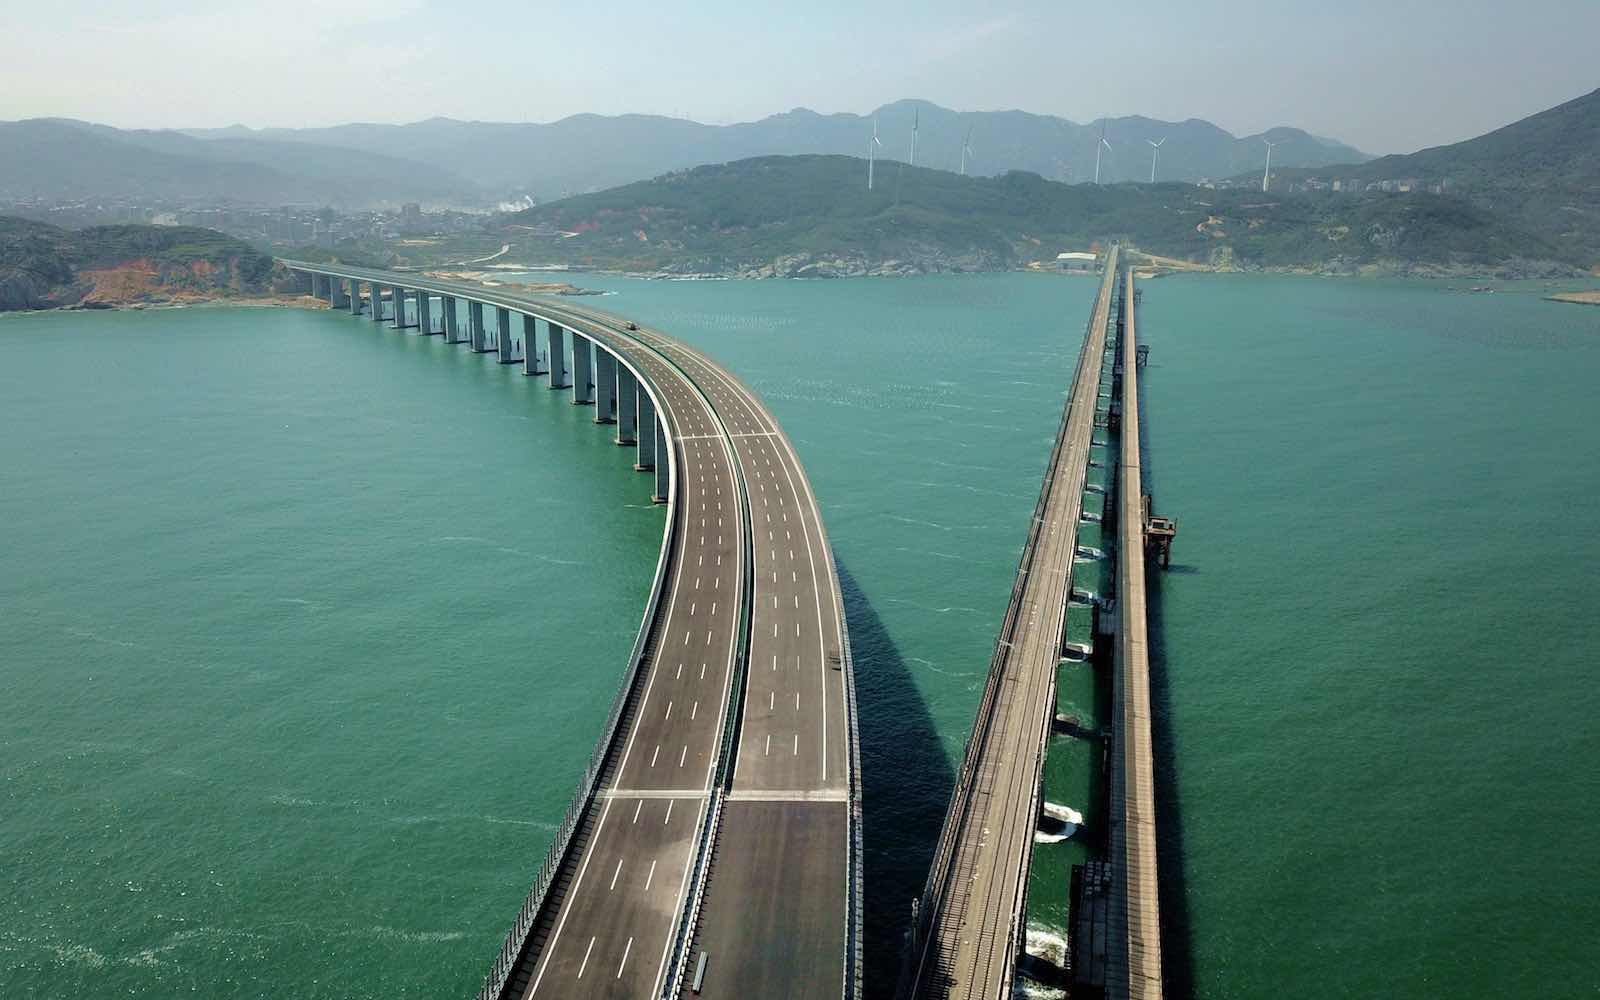 Pingtan cross-strait expressway/railway bridge under construction, Fujian province, China, 29 April (Wang Dongming/China News Service via Getty)